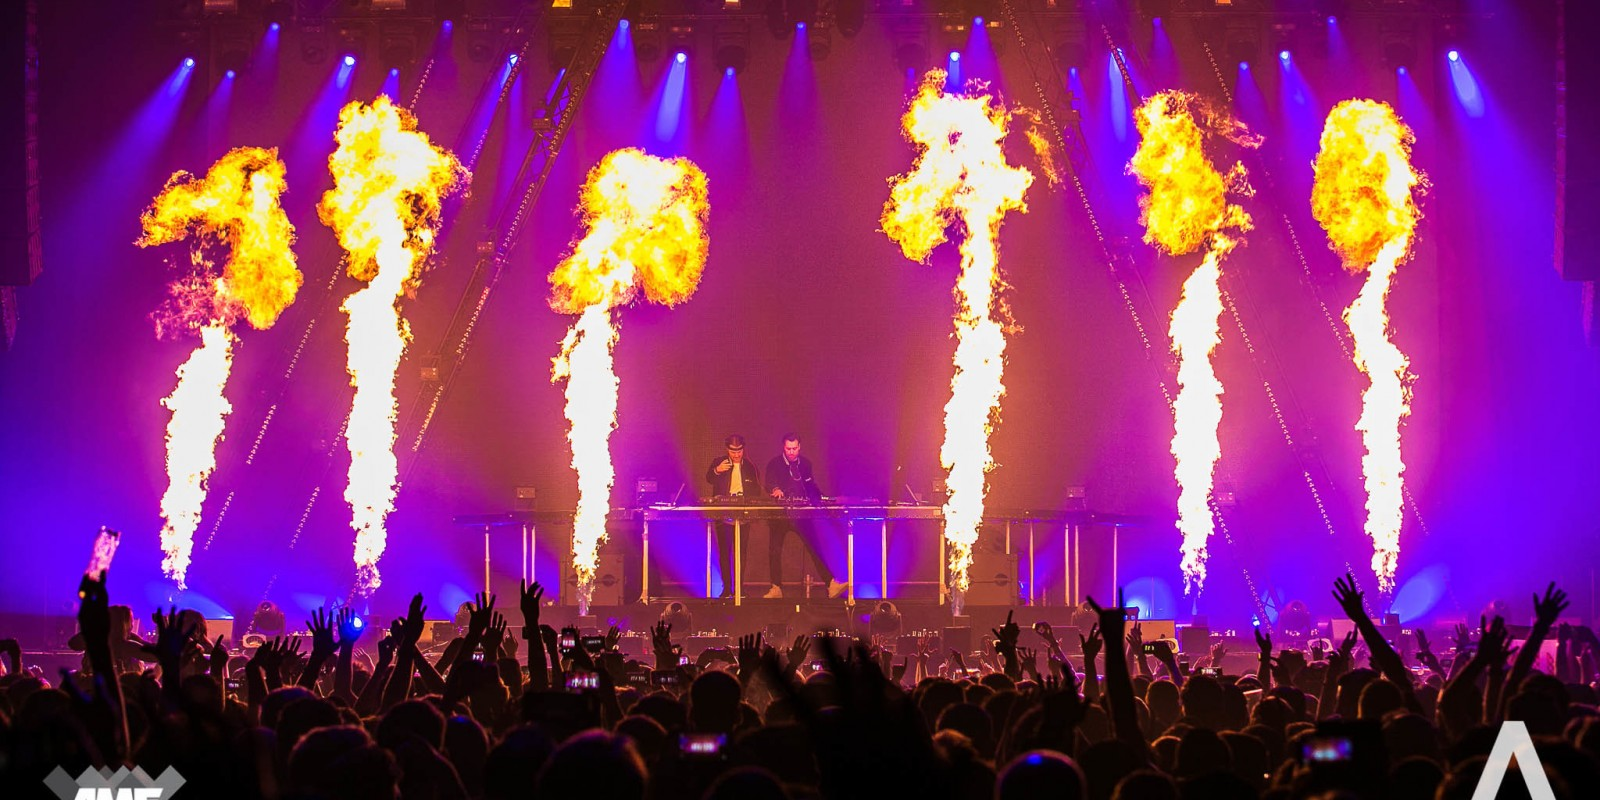 Axwell Ingrosso at AMF